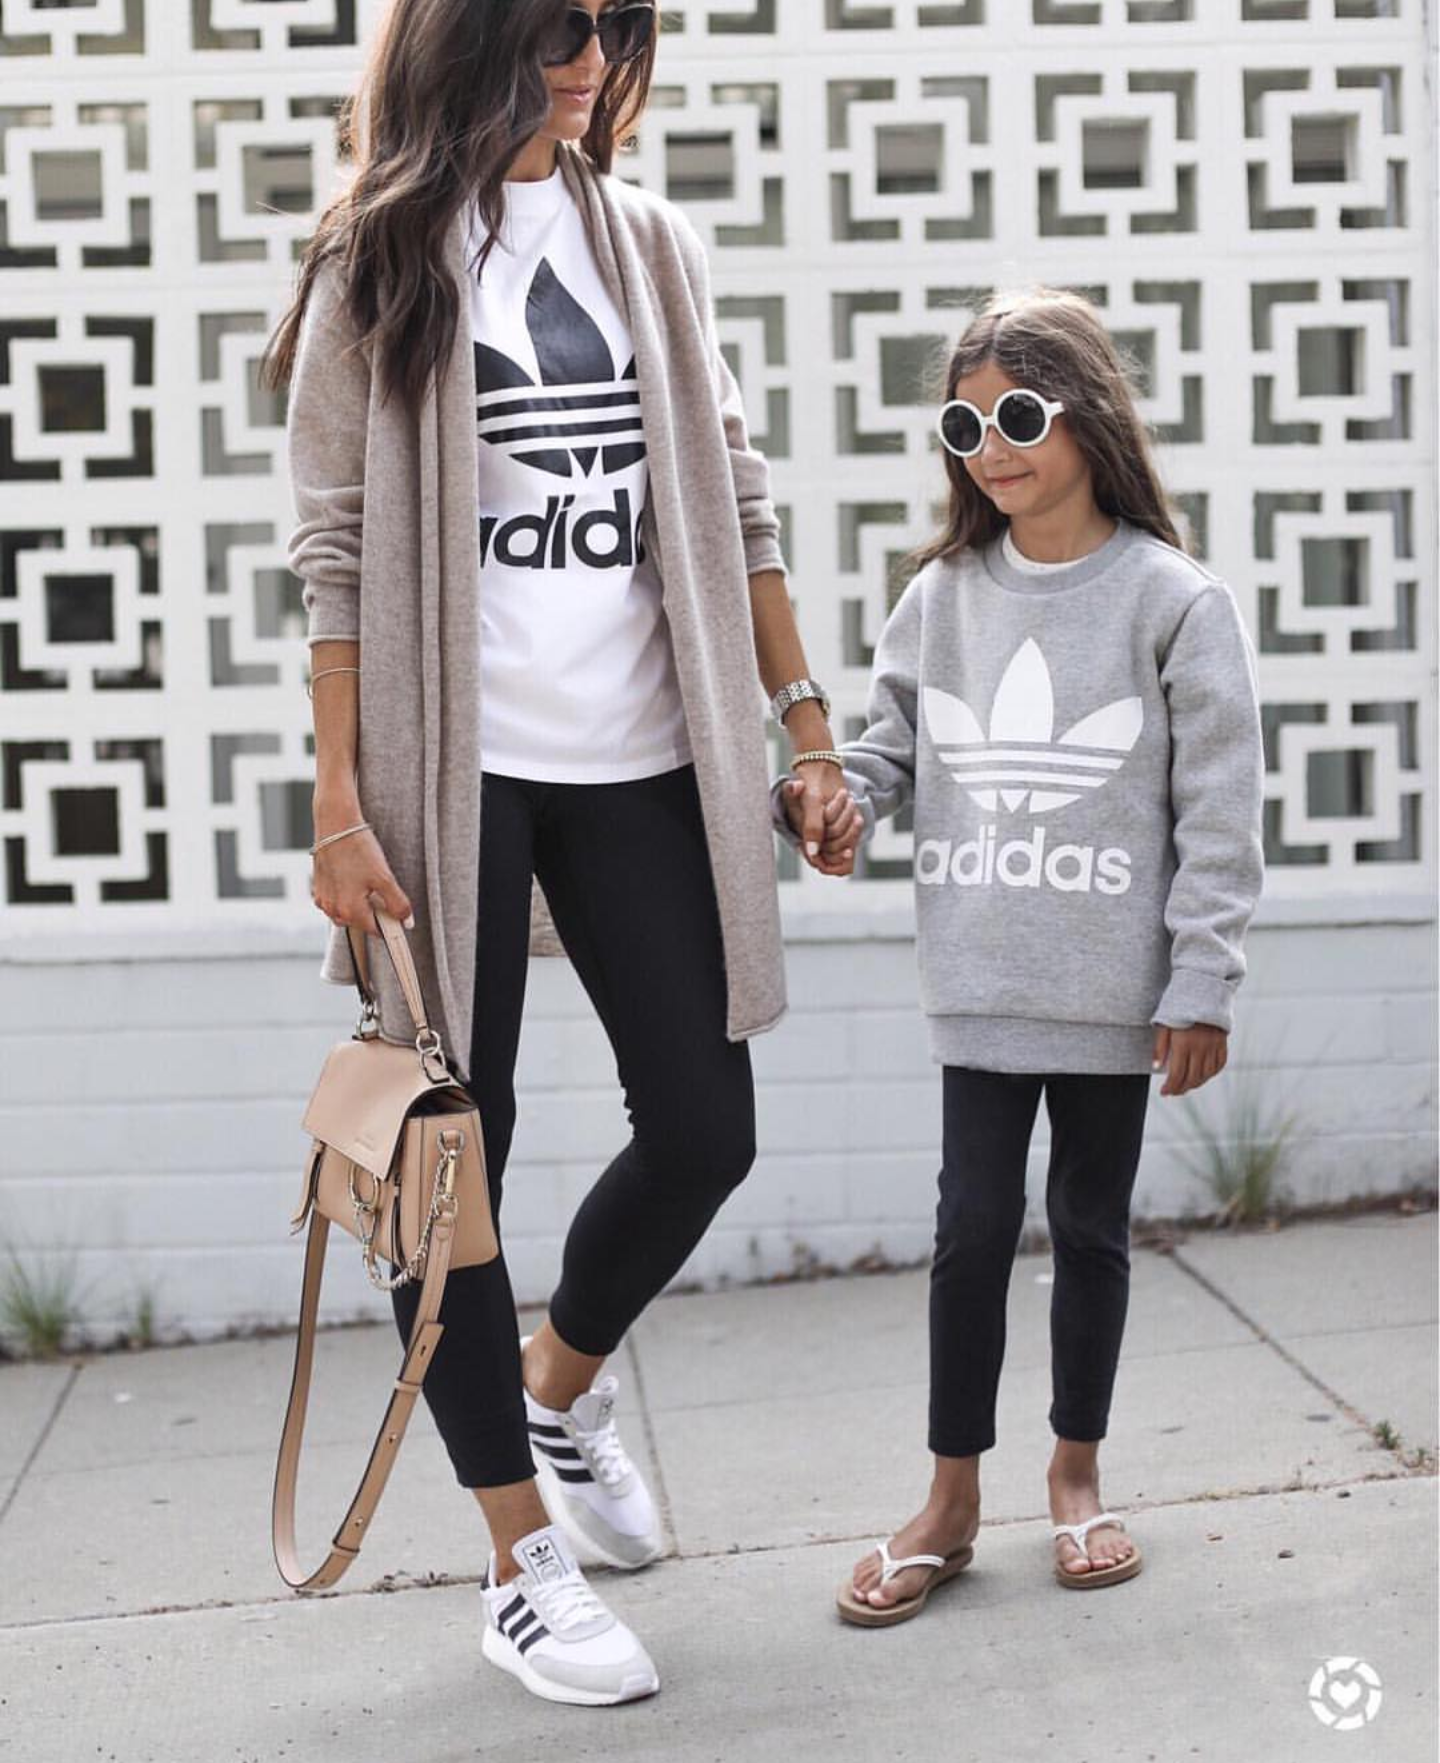 Cute Adidas Outfits For Women  White Adidas Top, Black Adidas